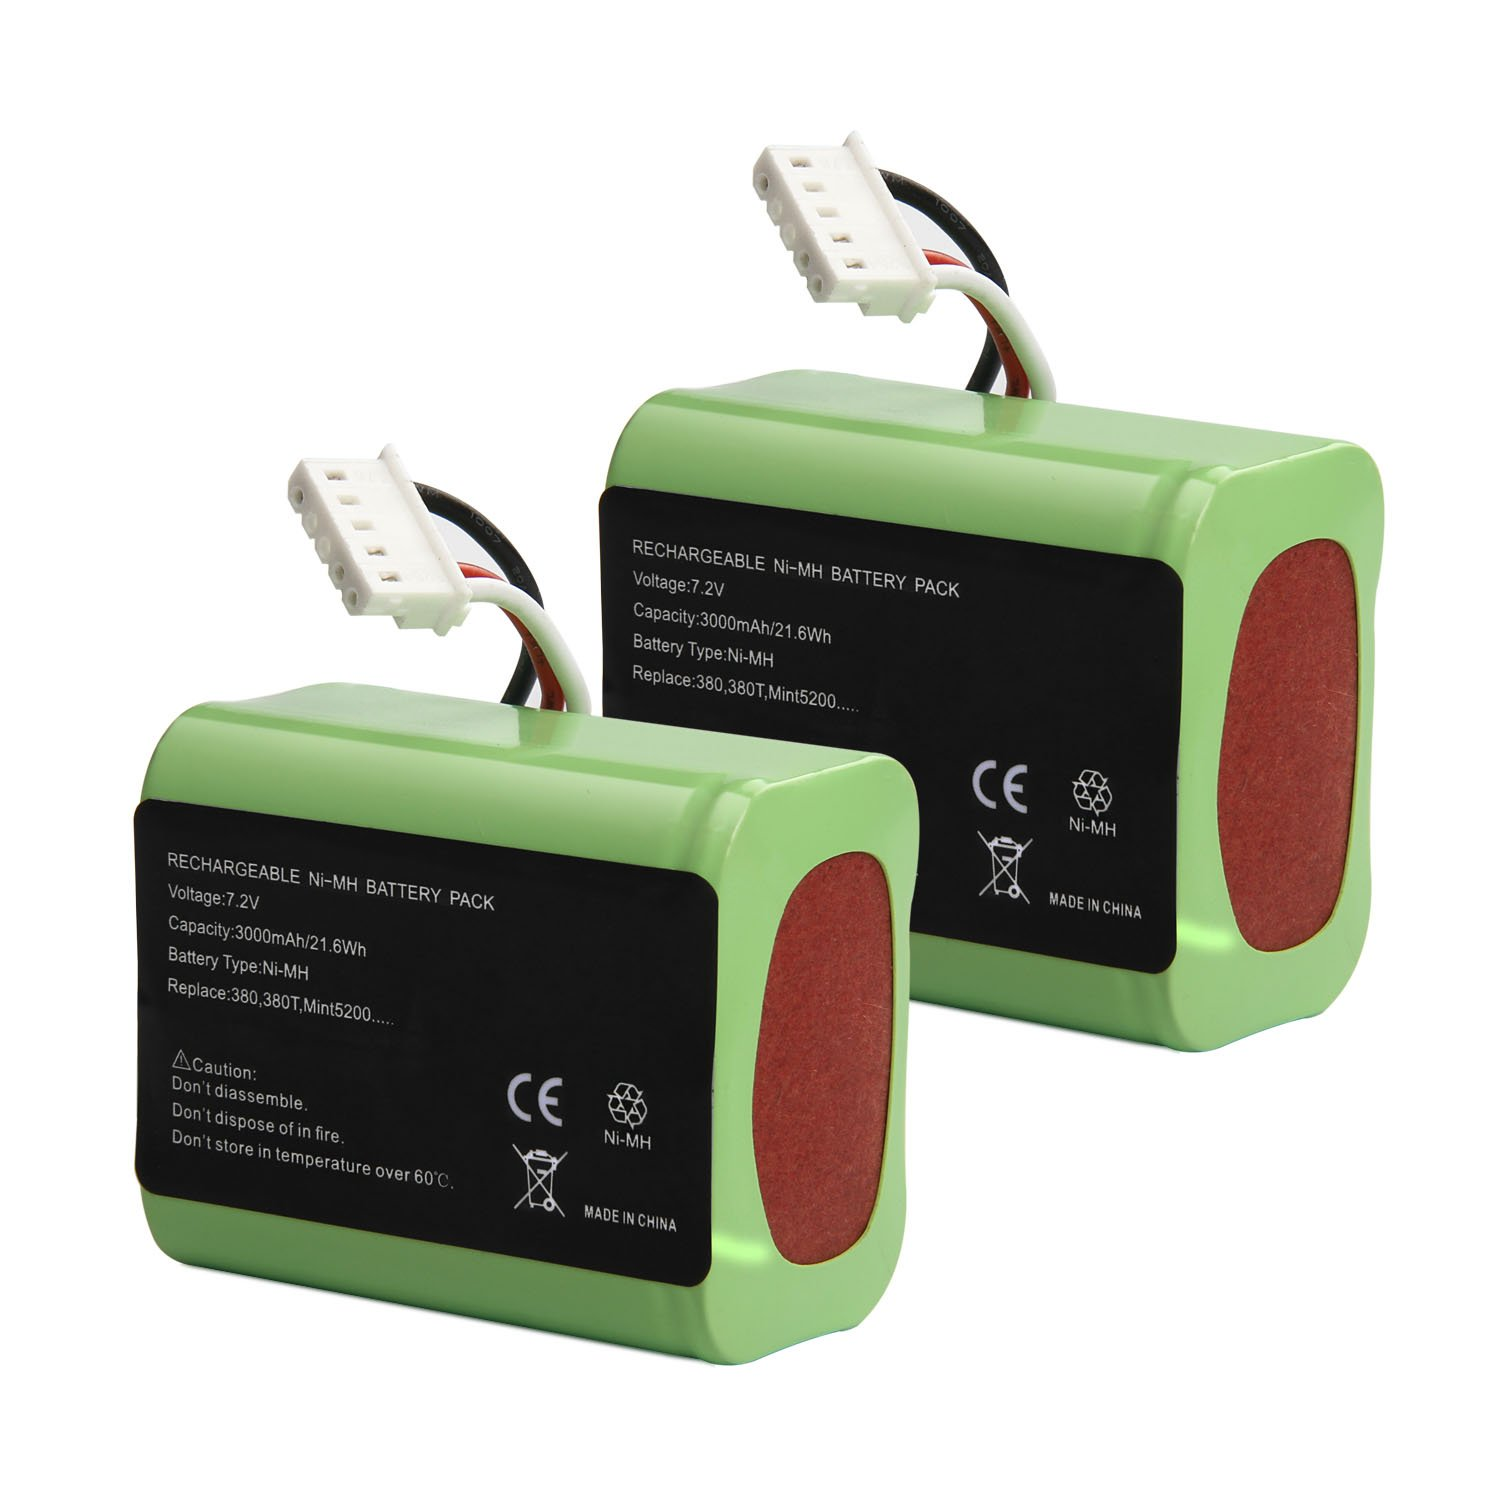 RayWEE [2 Pack 7.2V 3000mAh Ni-MH iRobot Mint 5200 Vacuum Cleaner Replacement Battery for iRobot Braava 380, 380T, Mint 5200, 5200B, 5200C Floor Mopping Robots(High Capacity)